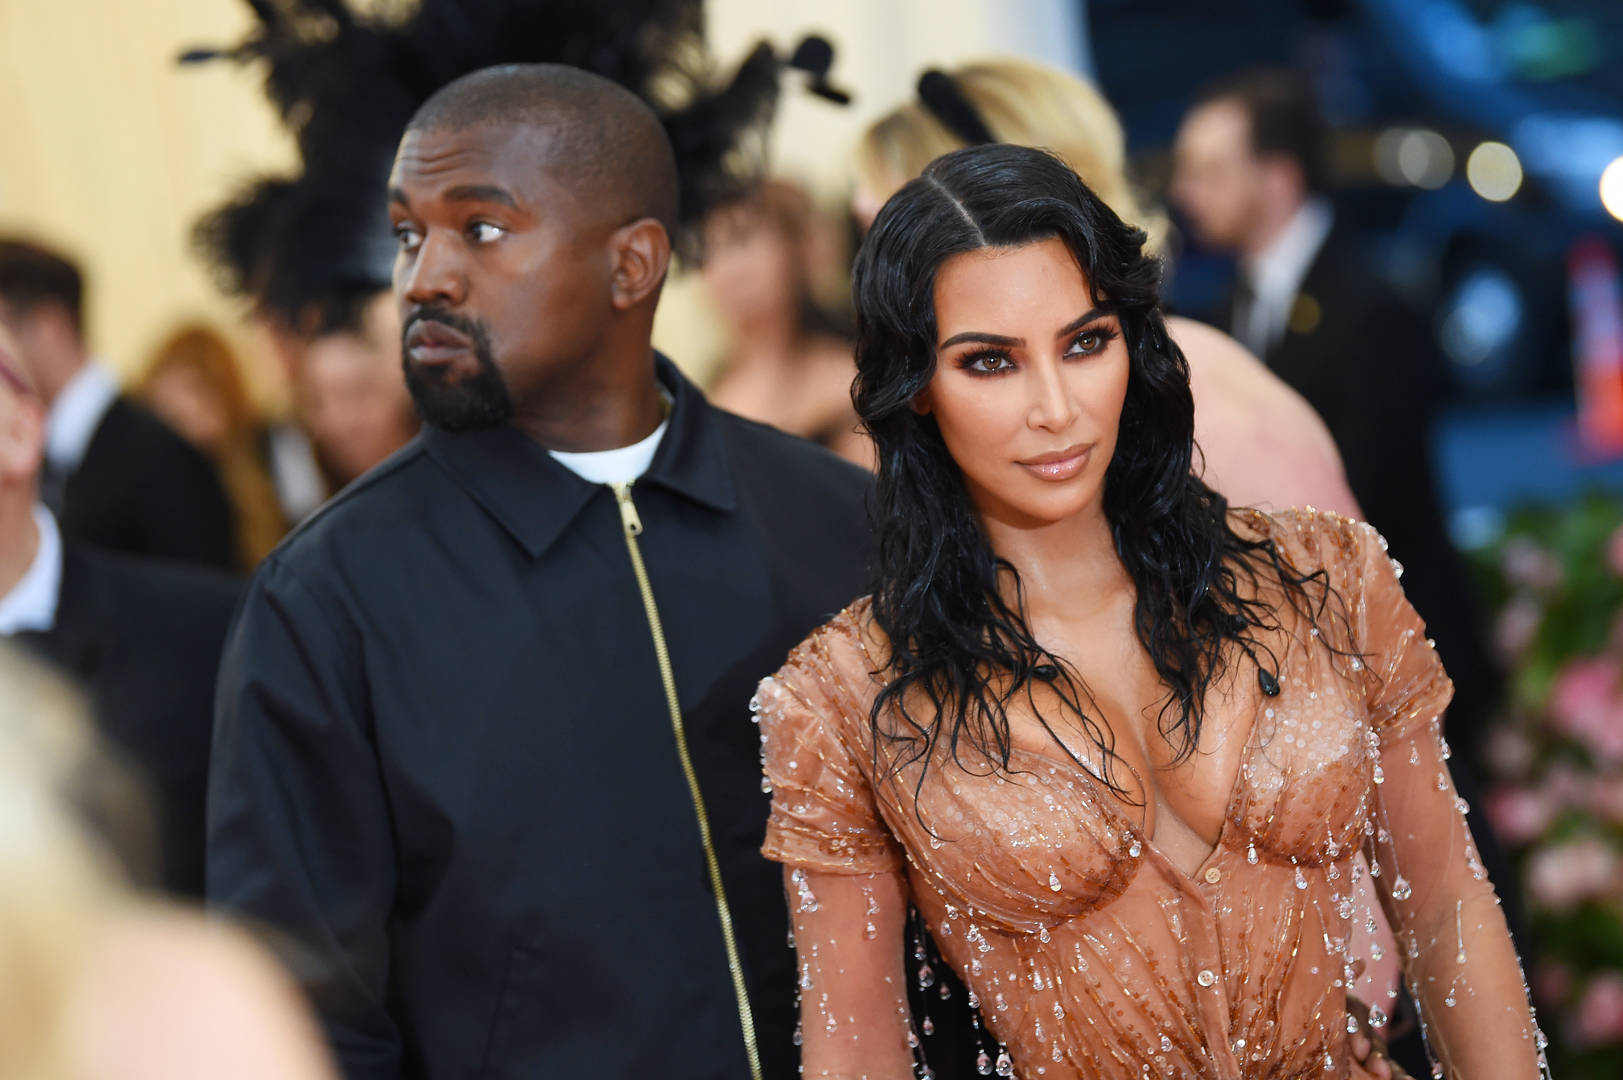 Kim Kardashian West and Kanye West attend The 2019 Met Gala. (Photo by Dimitrios Kambouris/Getty Images for The Met Museum/Vogue)